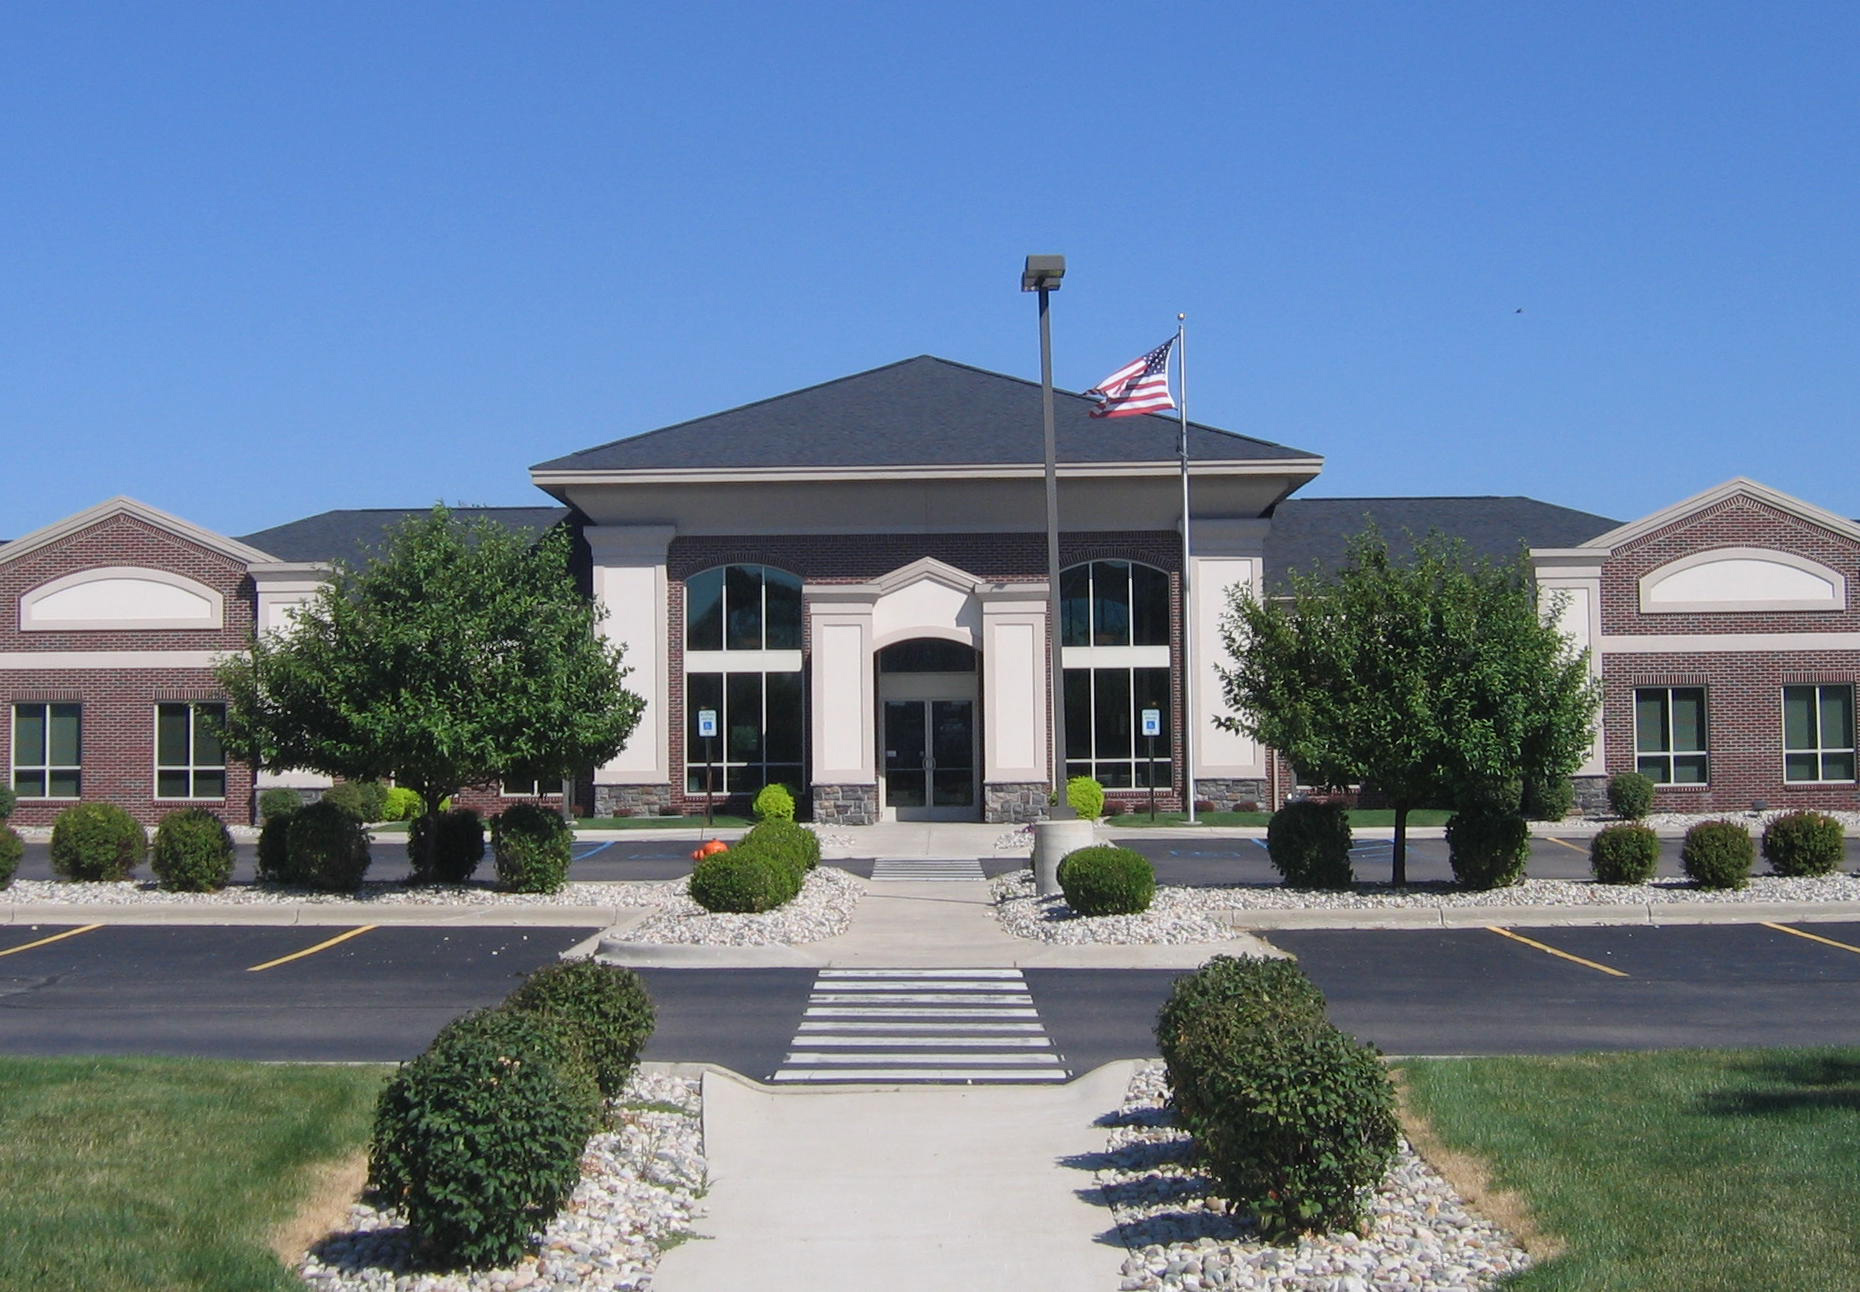 Photograph of Genisys Credit Union's Fenton Branch